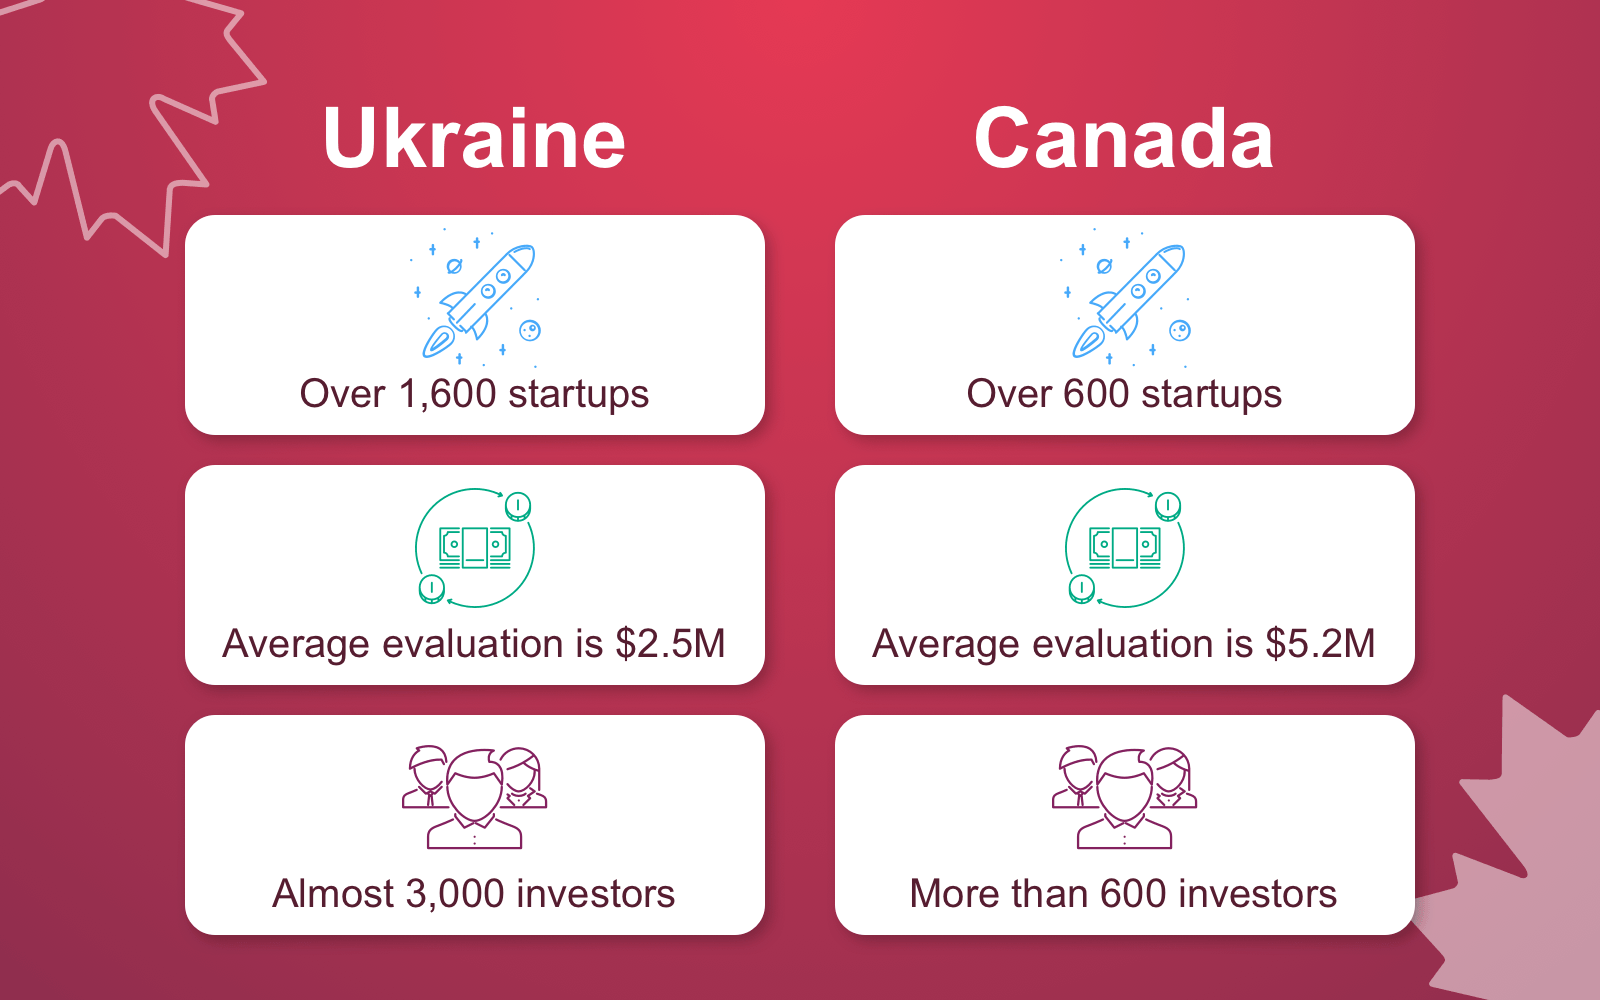 Statistics on the number of technical startups in Ukraine compared to Canada